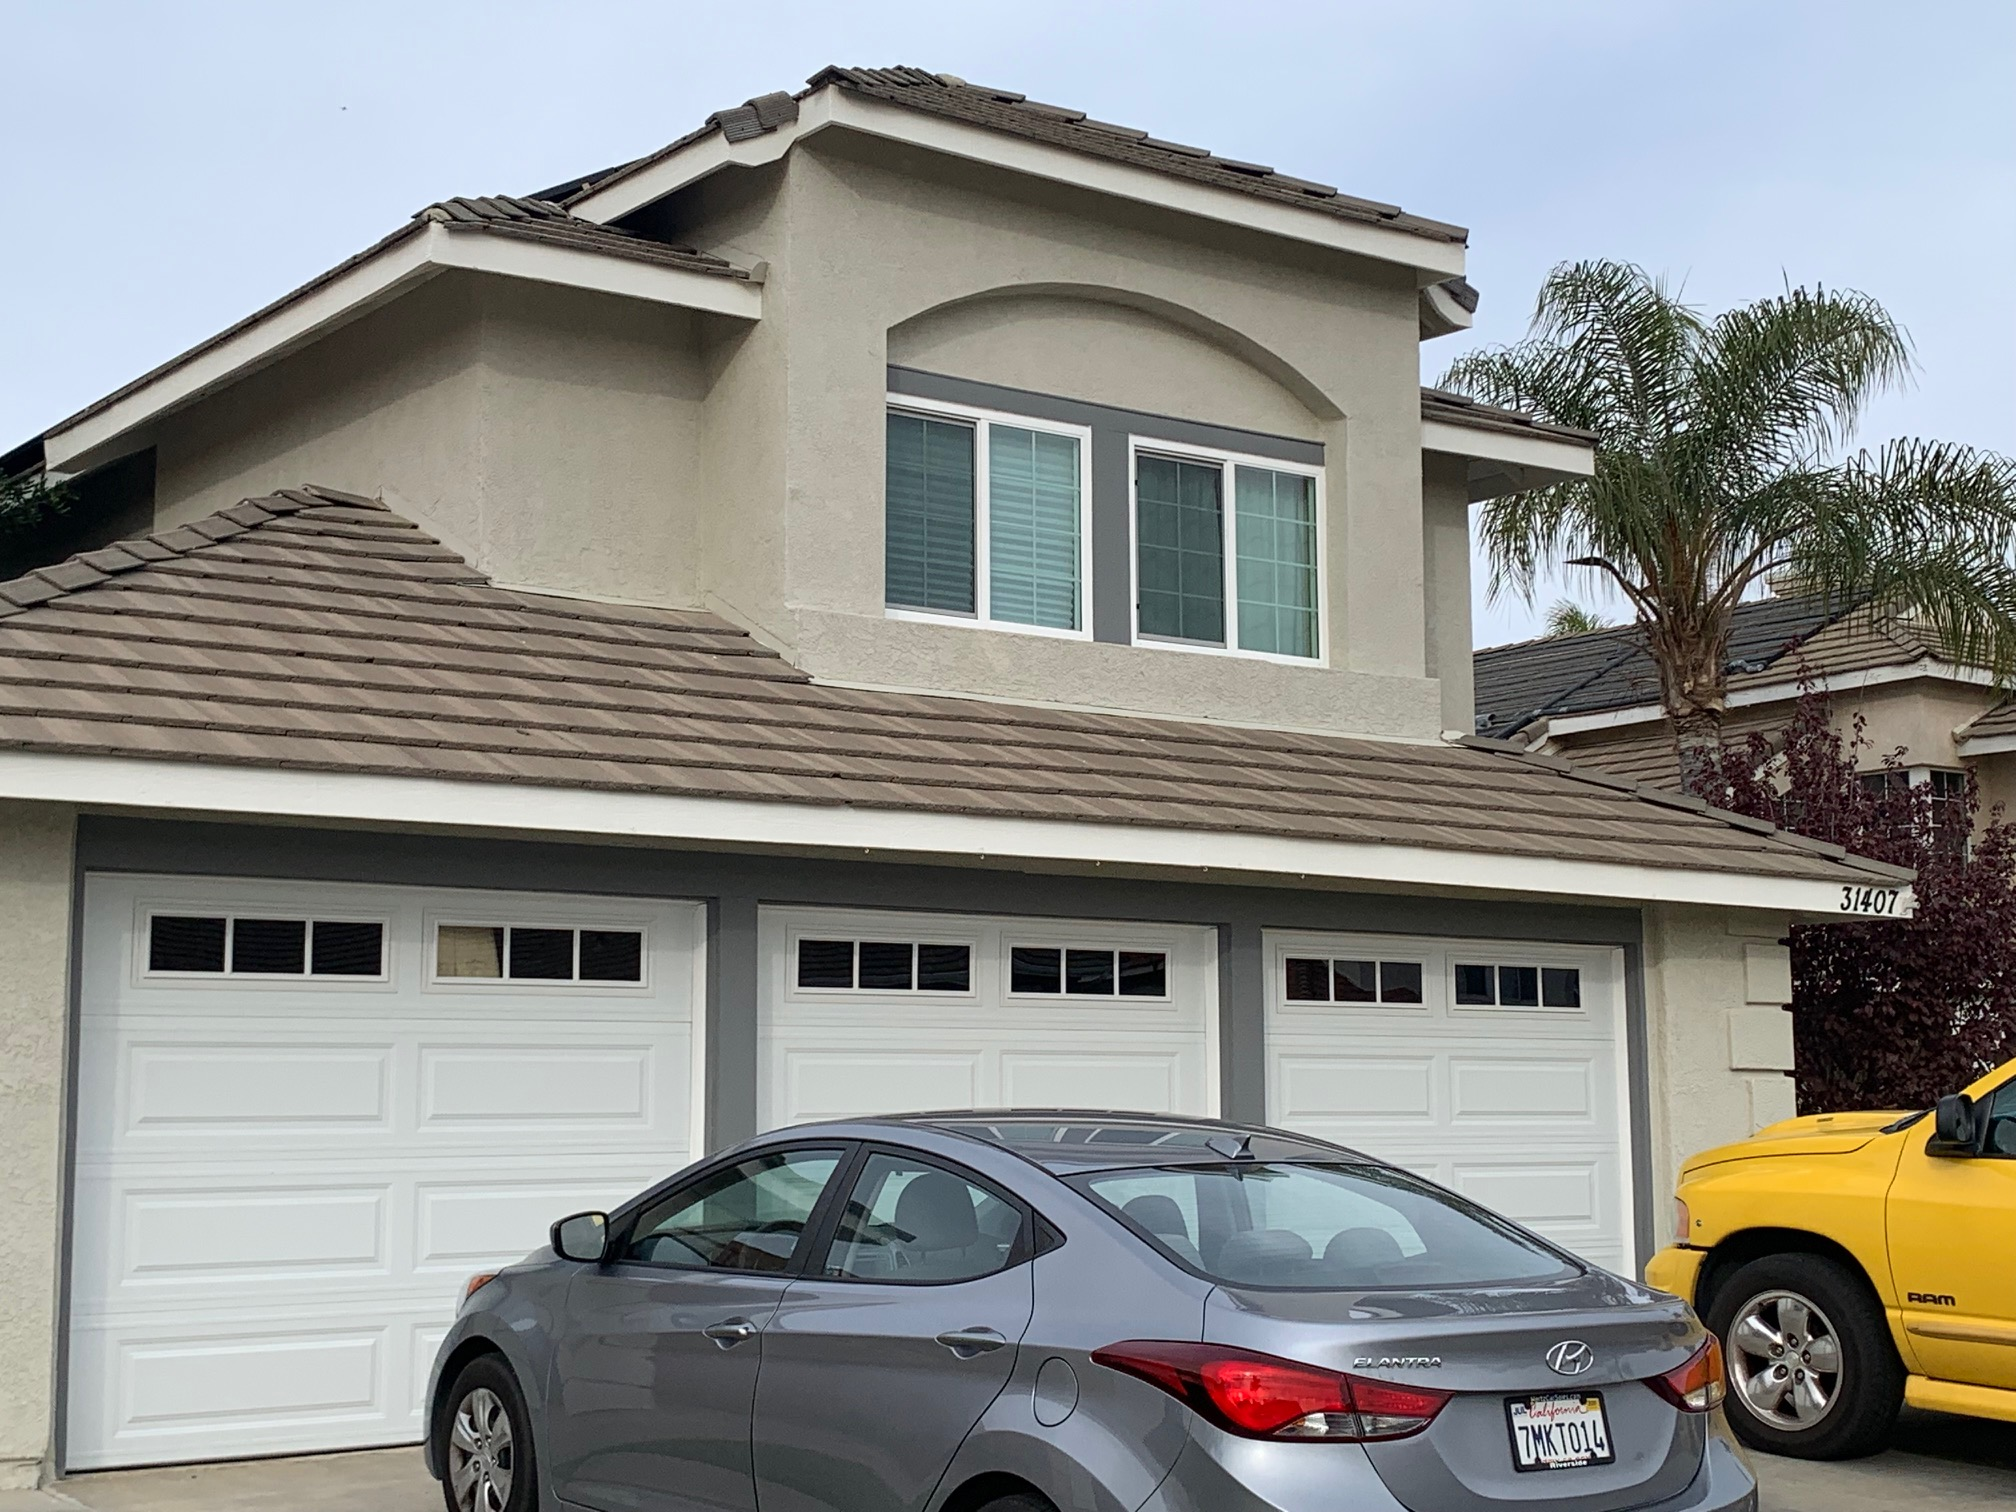 Windows Replacement Project in Cucamonga